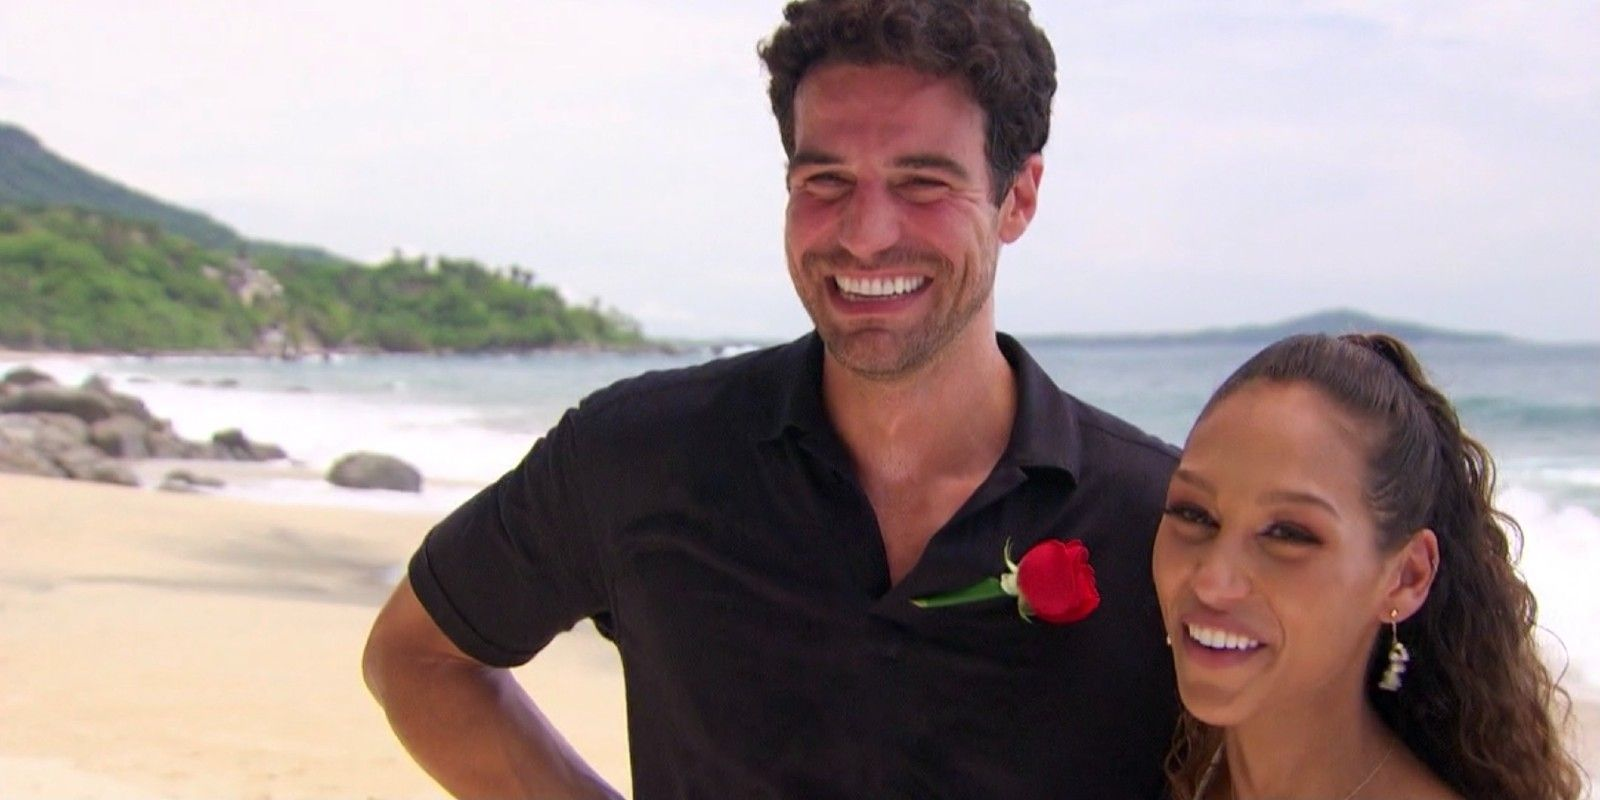 Bachelor In Paradise: Joe & Serena Reveal Each Other's Odd Habits